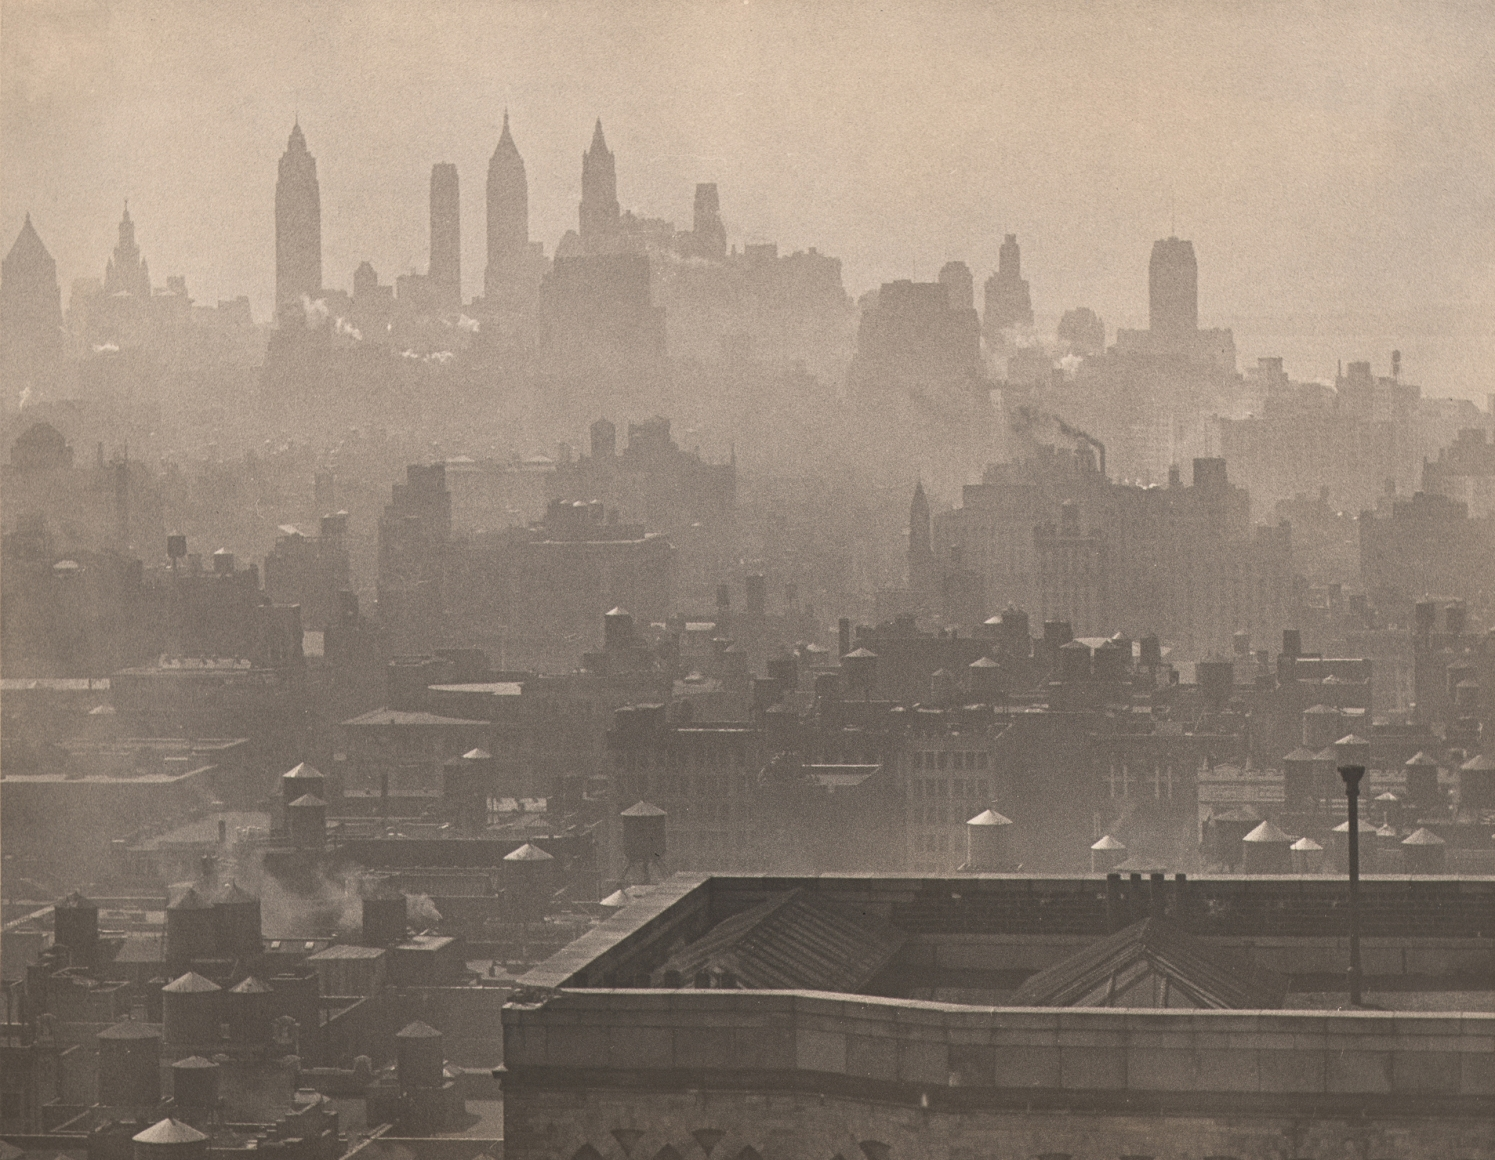 Paul J. Woolf, City Symphony, c. 1935. Hazy cityscape with a nearby rooftop in the foreground right and semi-obscured skyscrapers silhouetted in the mid- and background.